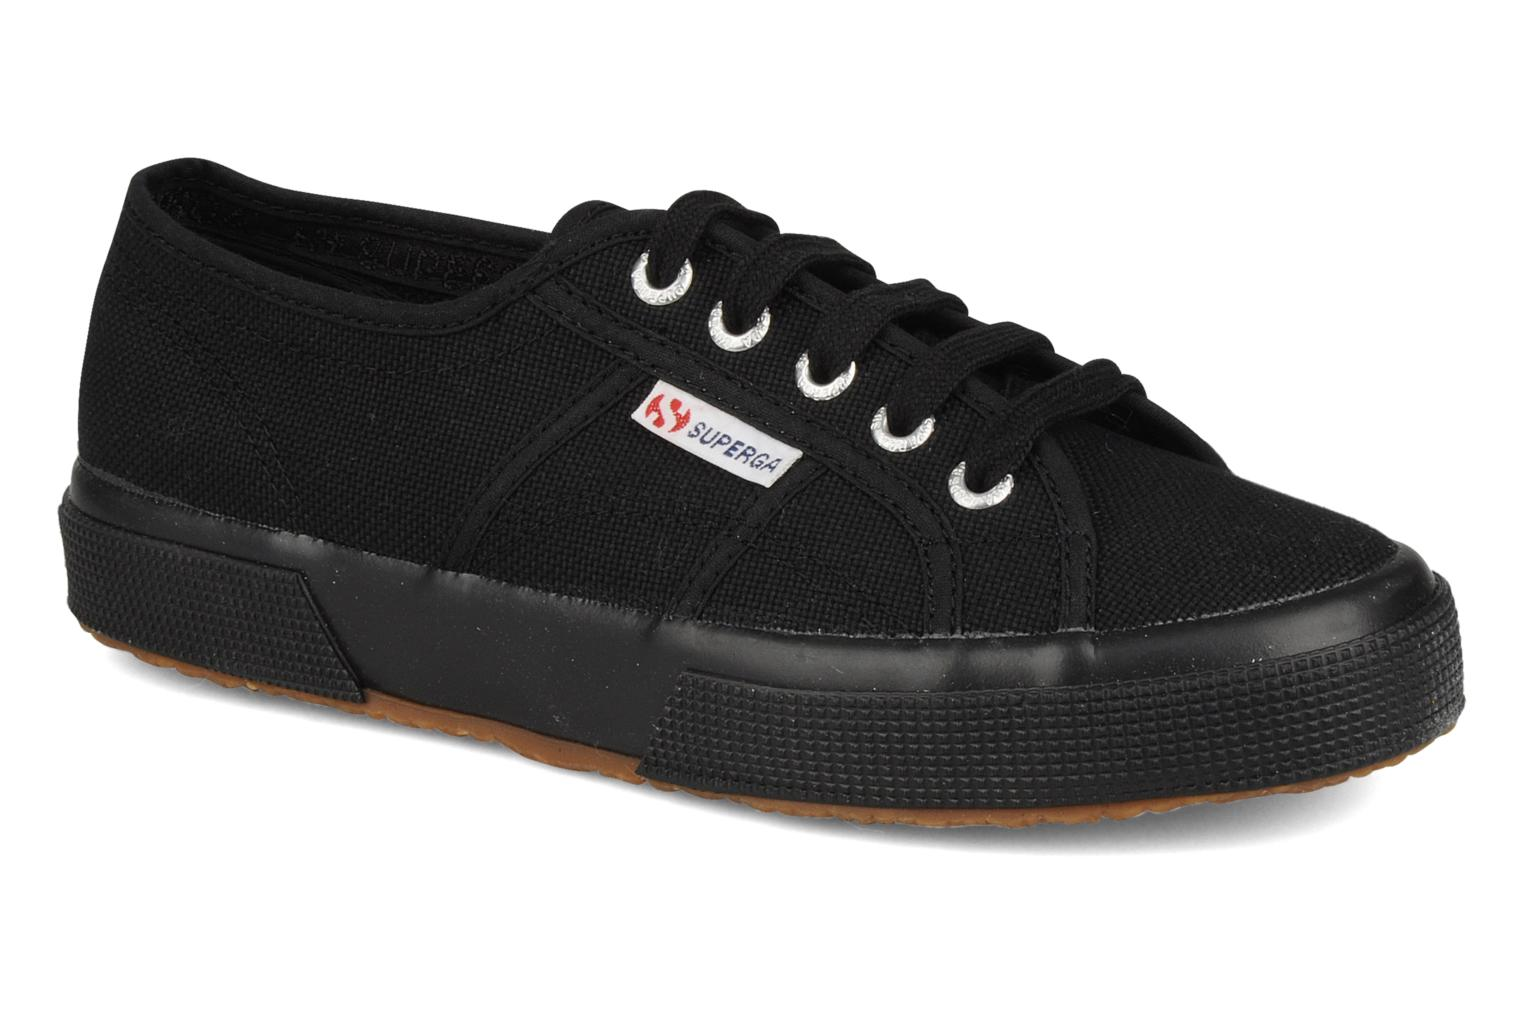 Baskets full black Superga cotu